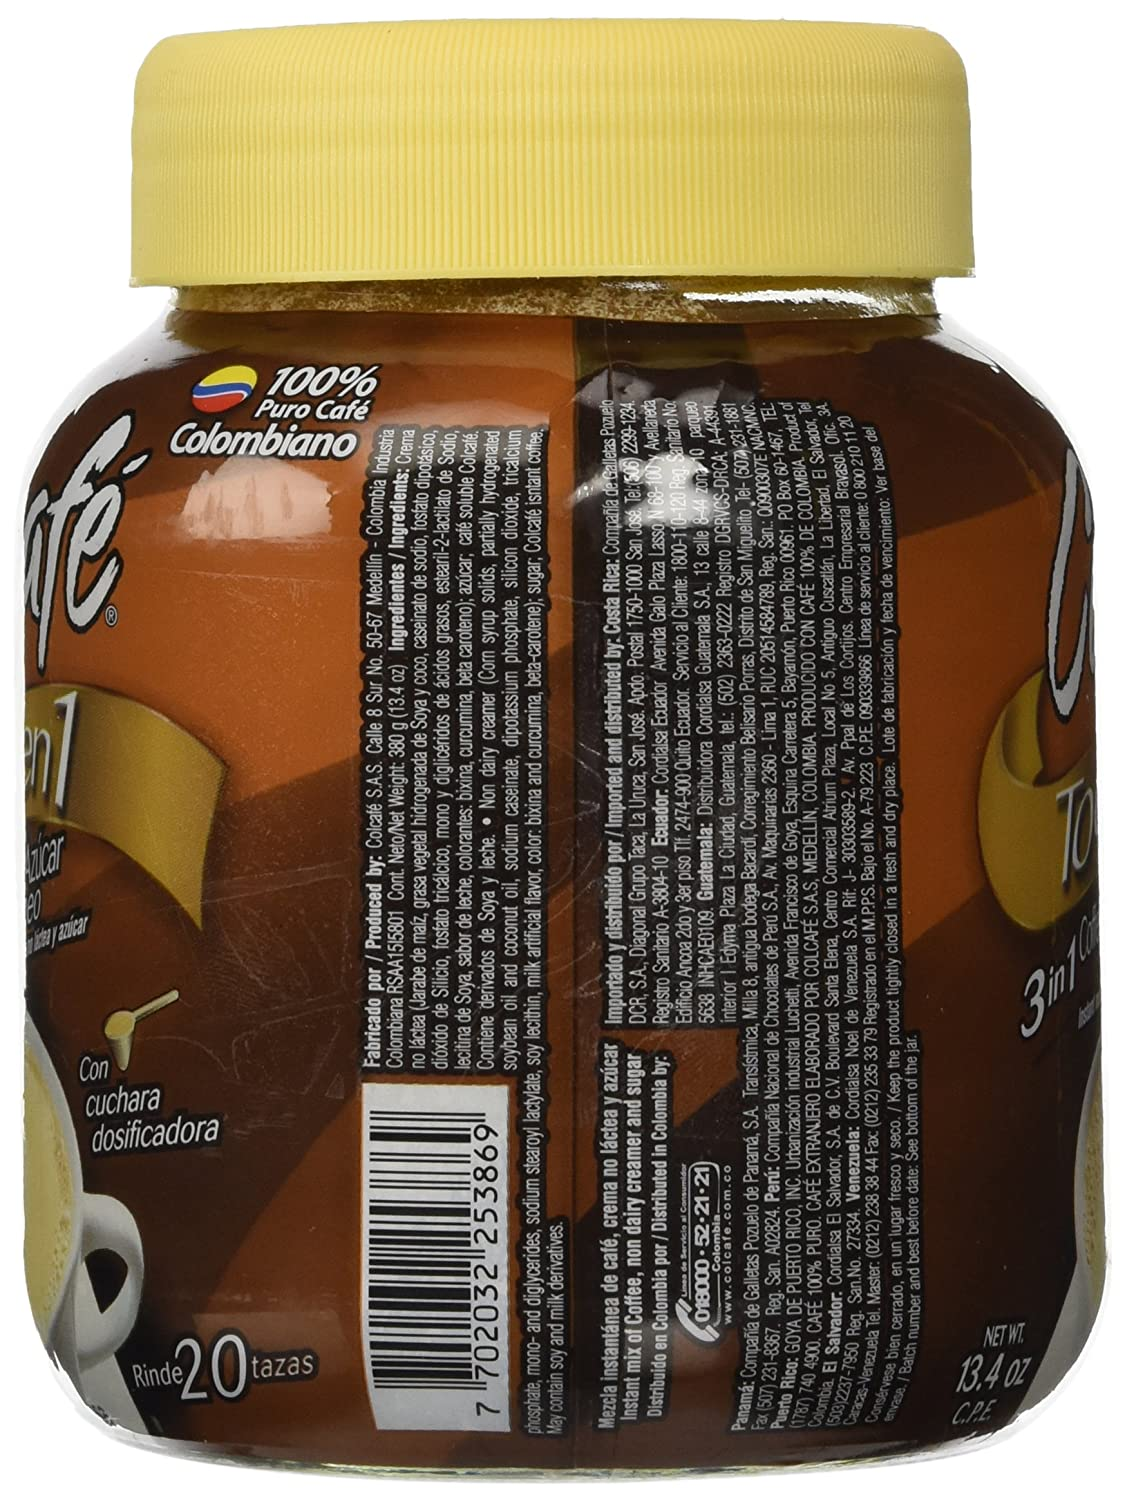 Colcafe Todo En 1 (3 in 1 Coffee/sugar/creamer) Cholesterol and Lactose Free 13.4oz (Single Bottle) Product of Colombia: Amazon.com: Grocery & Gourmet Food